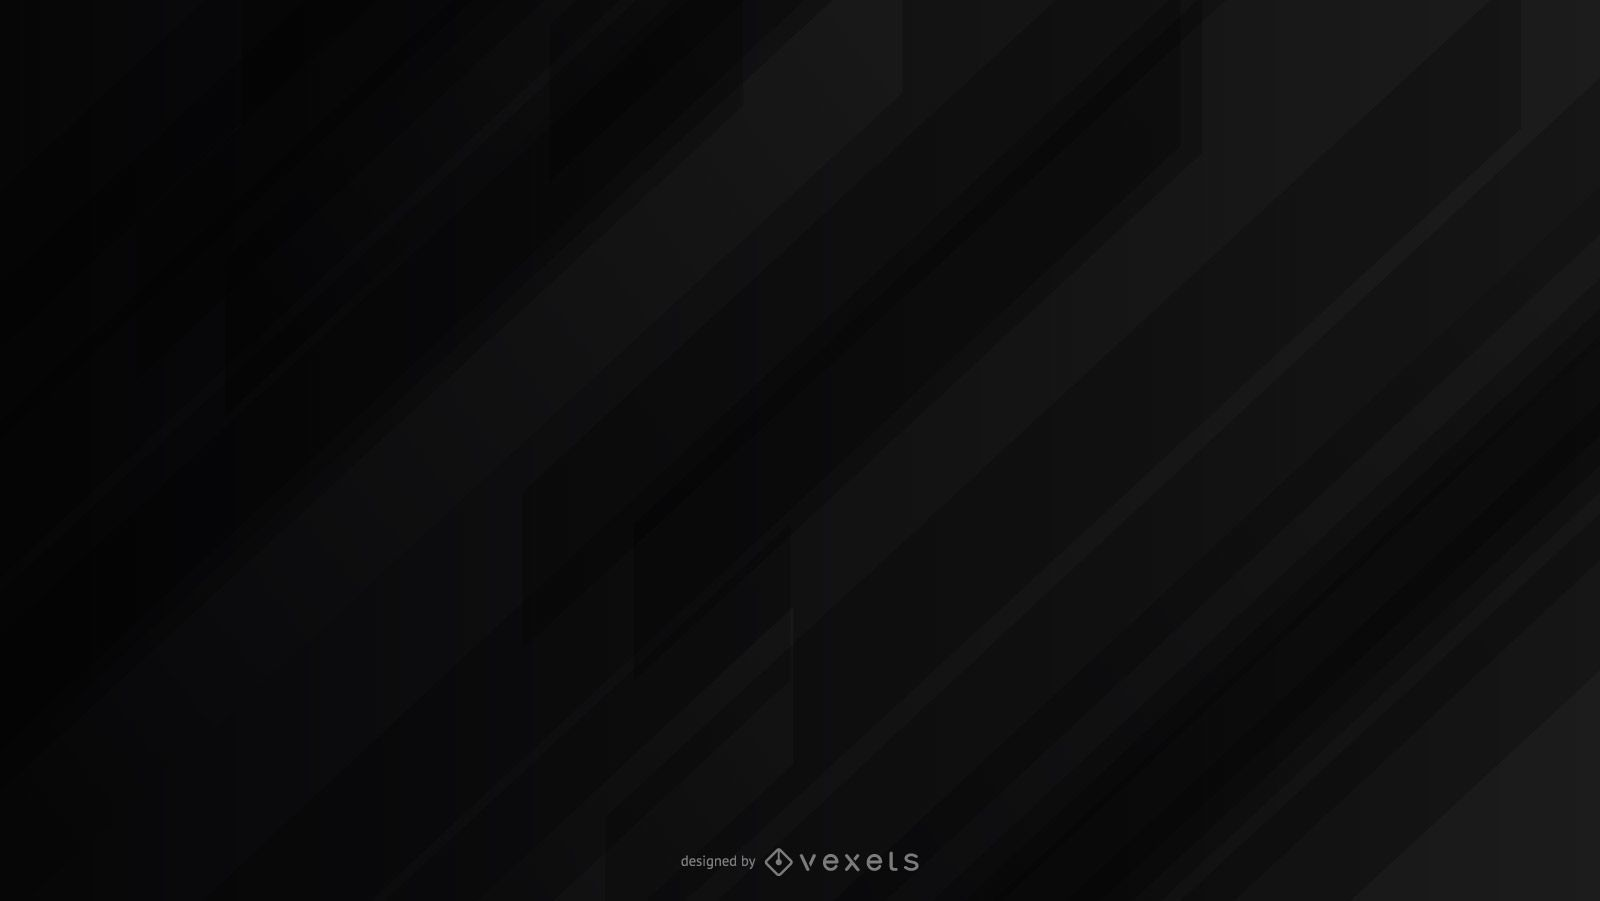 Black background abstract design